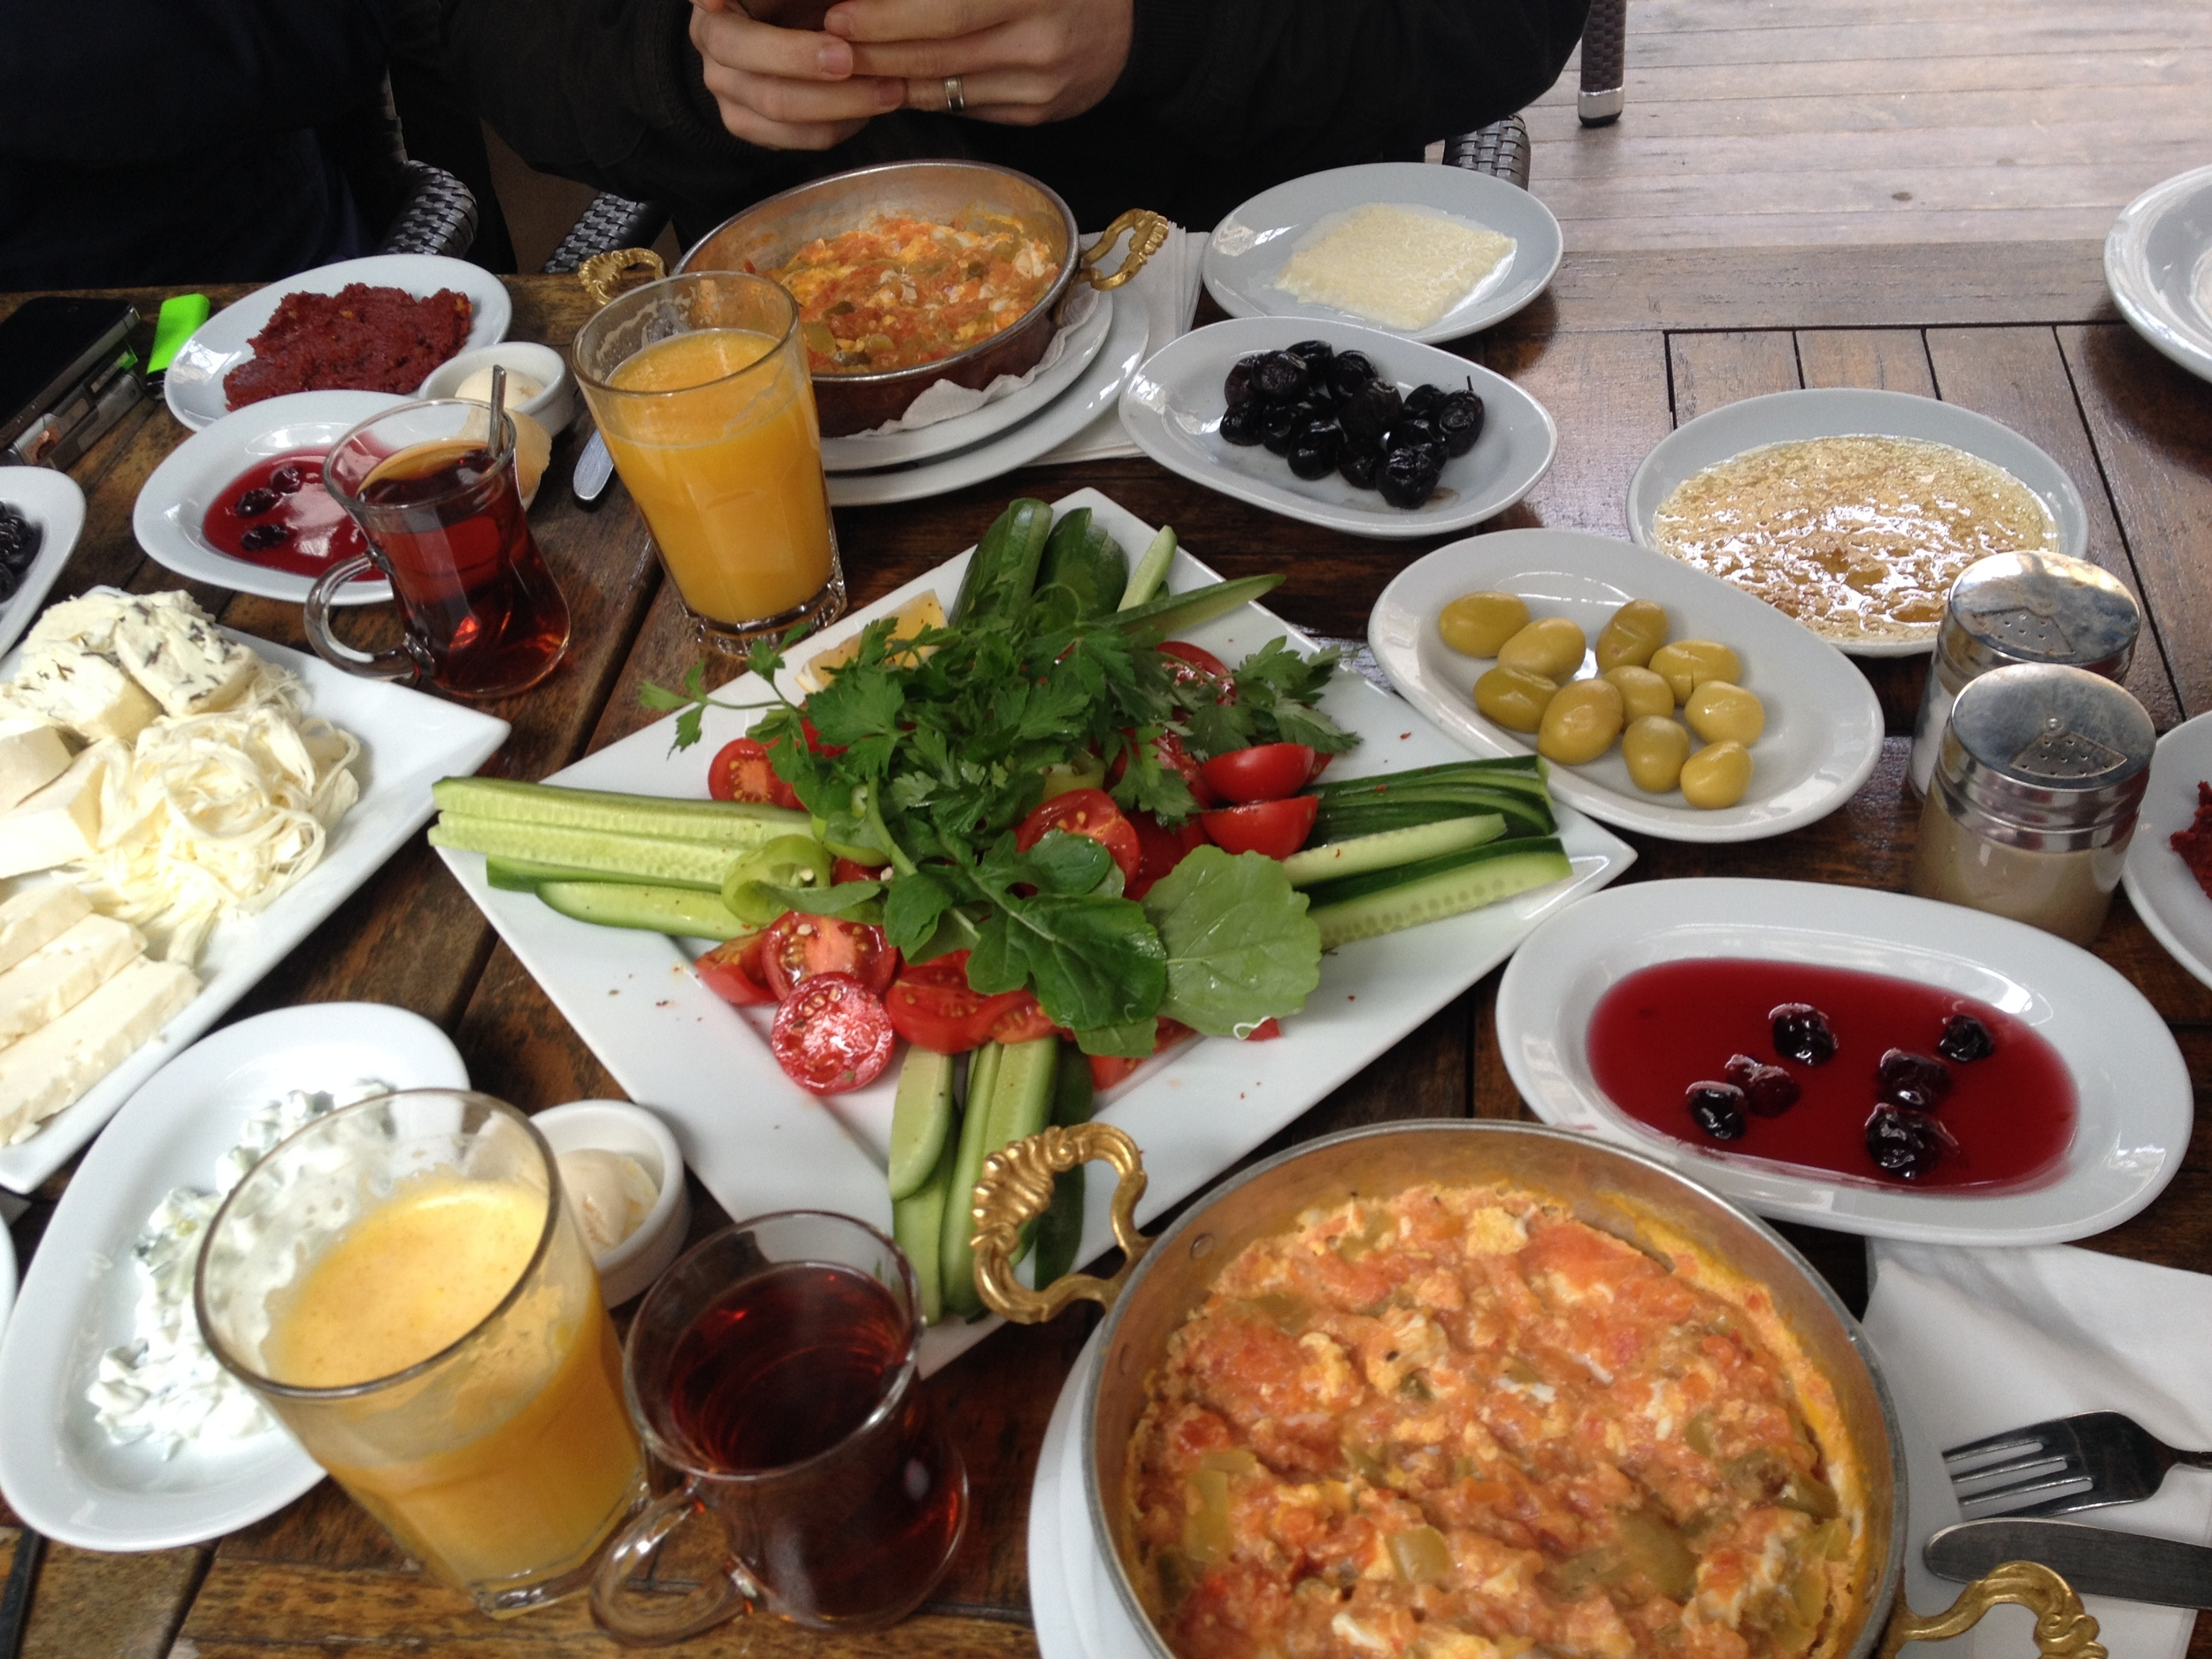 Traditional breakfast with freshly cut tomatoes and cucumbers, freshly squeezed orange juice, variety of cheeses, scrambled egg (menemen) and various other goodies.